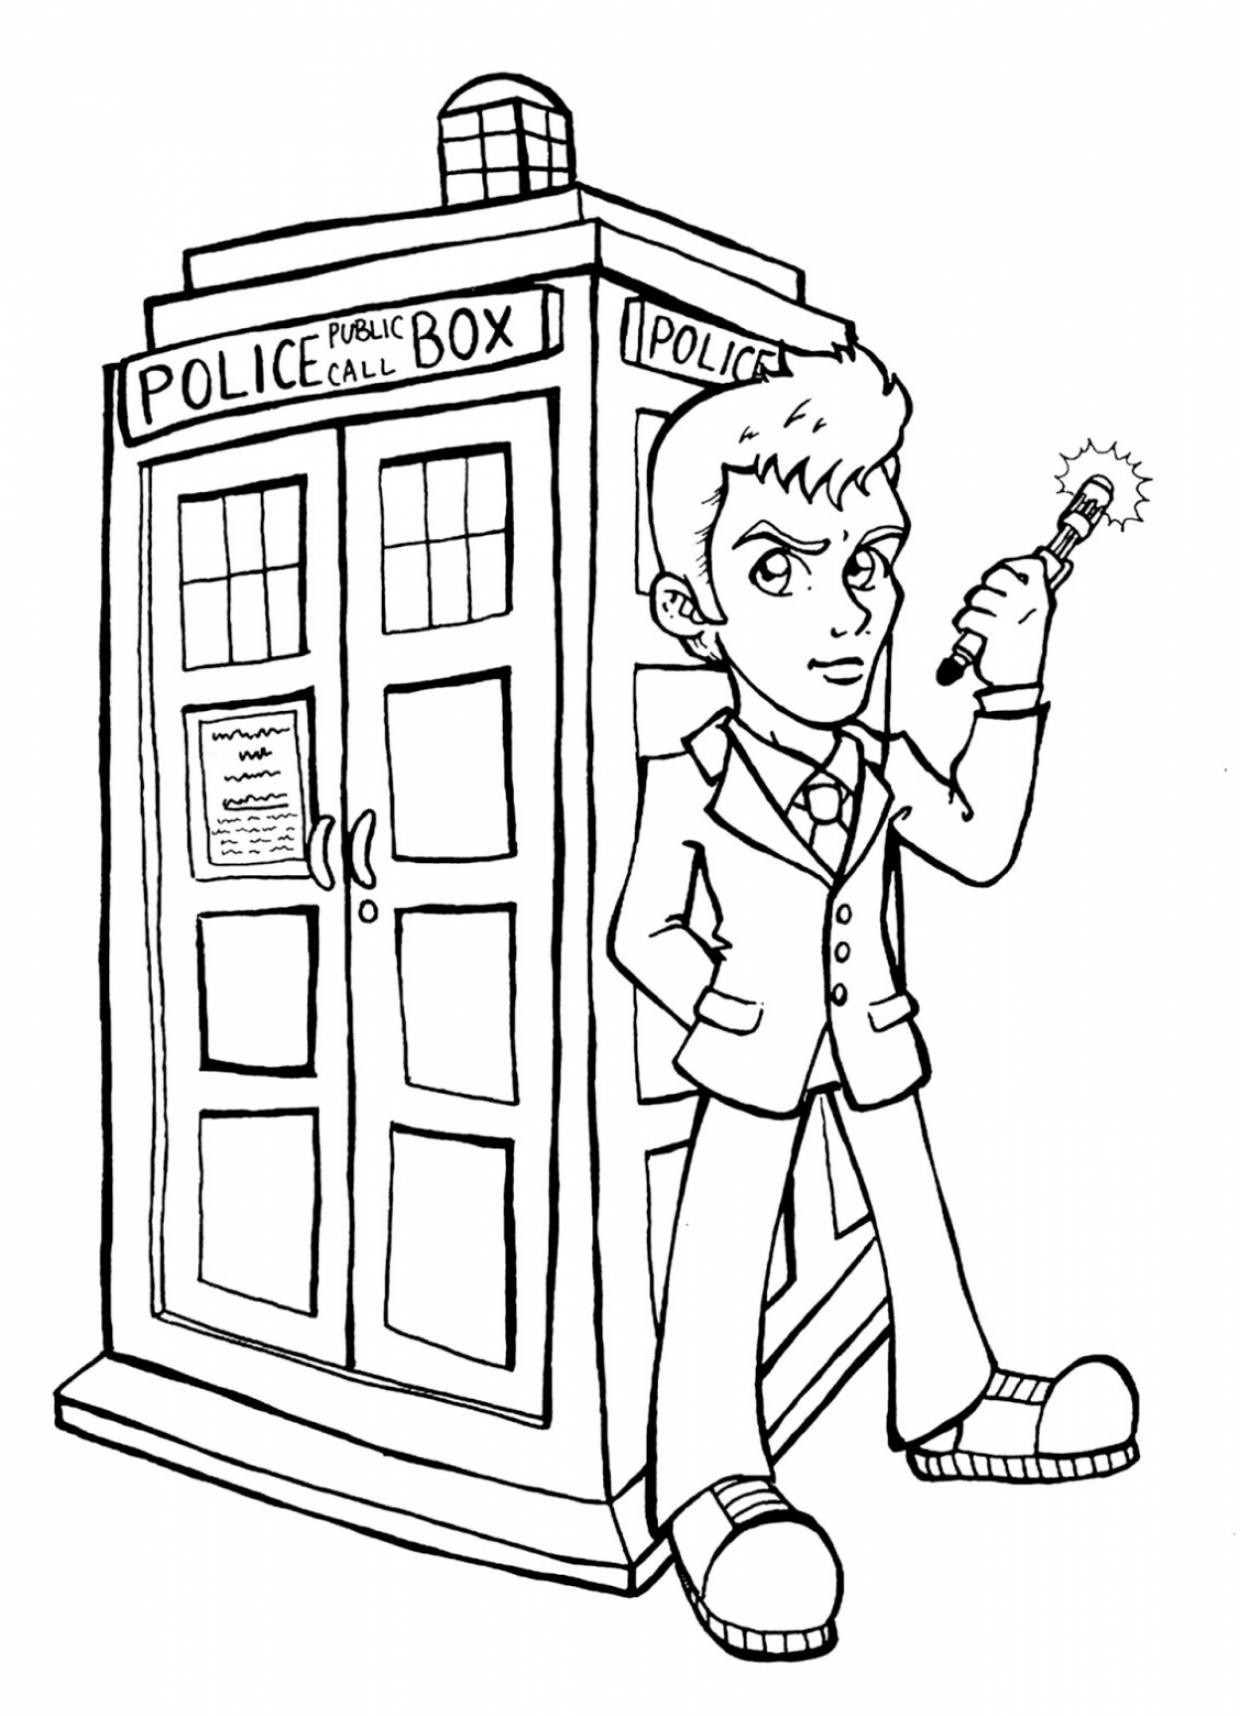 doctor who pictures to colour doctor who coloring pages on pinterest coloring pages to pictures colour doctor who